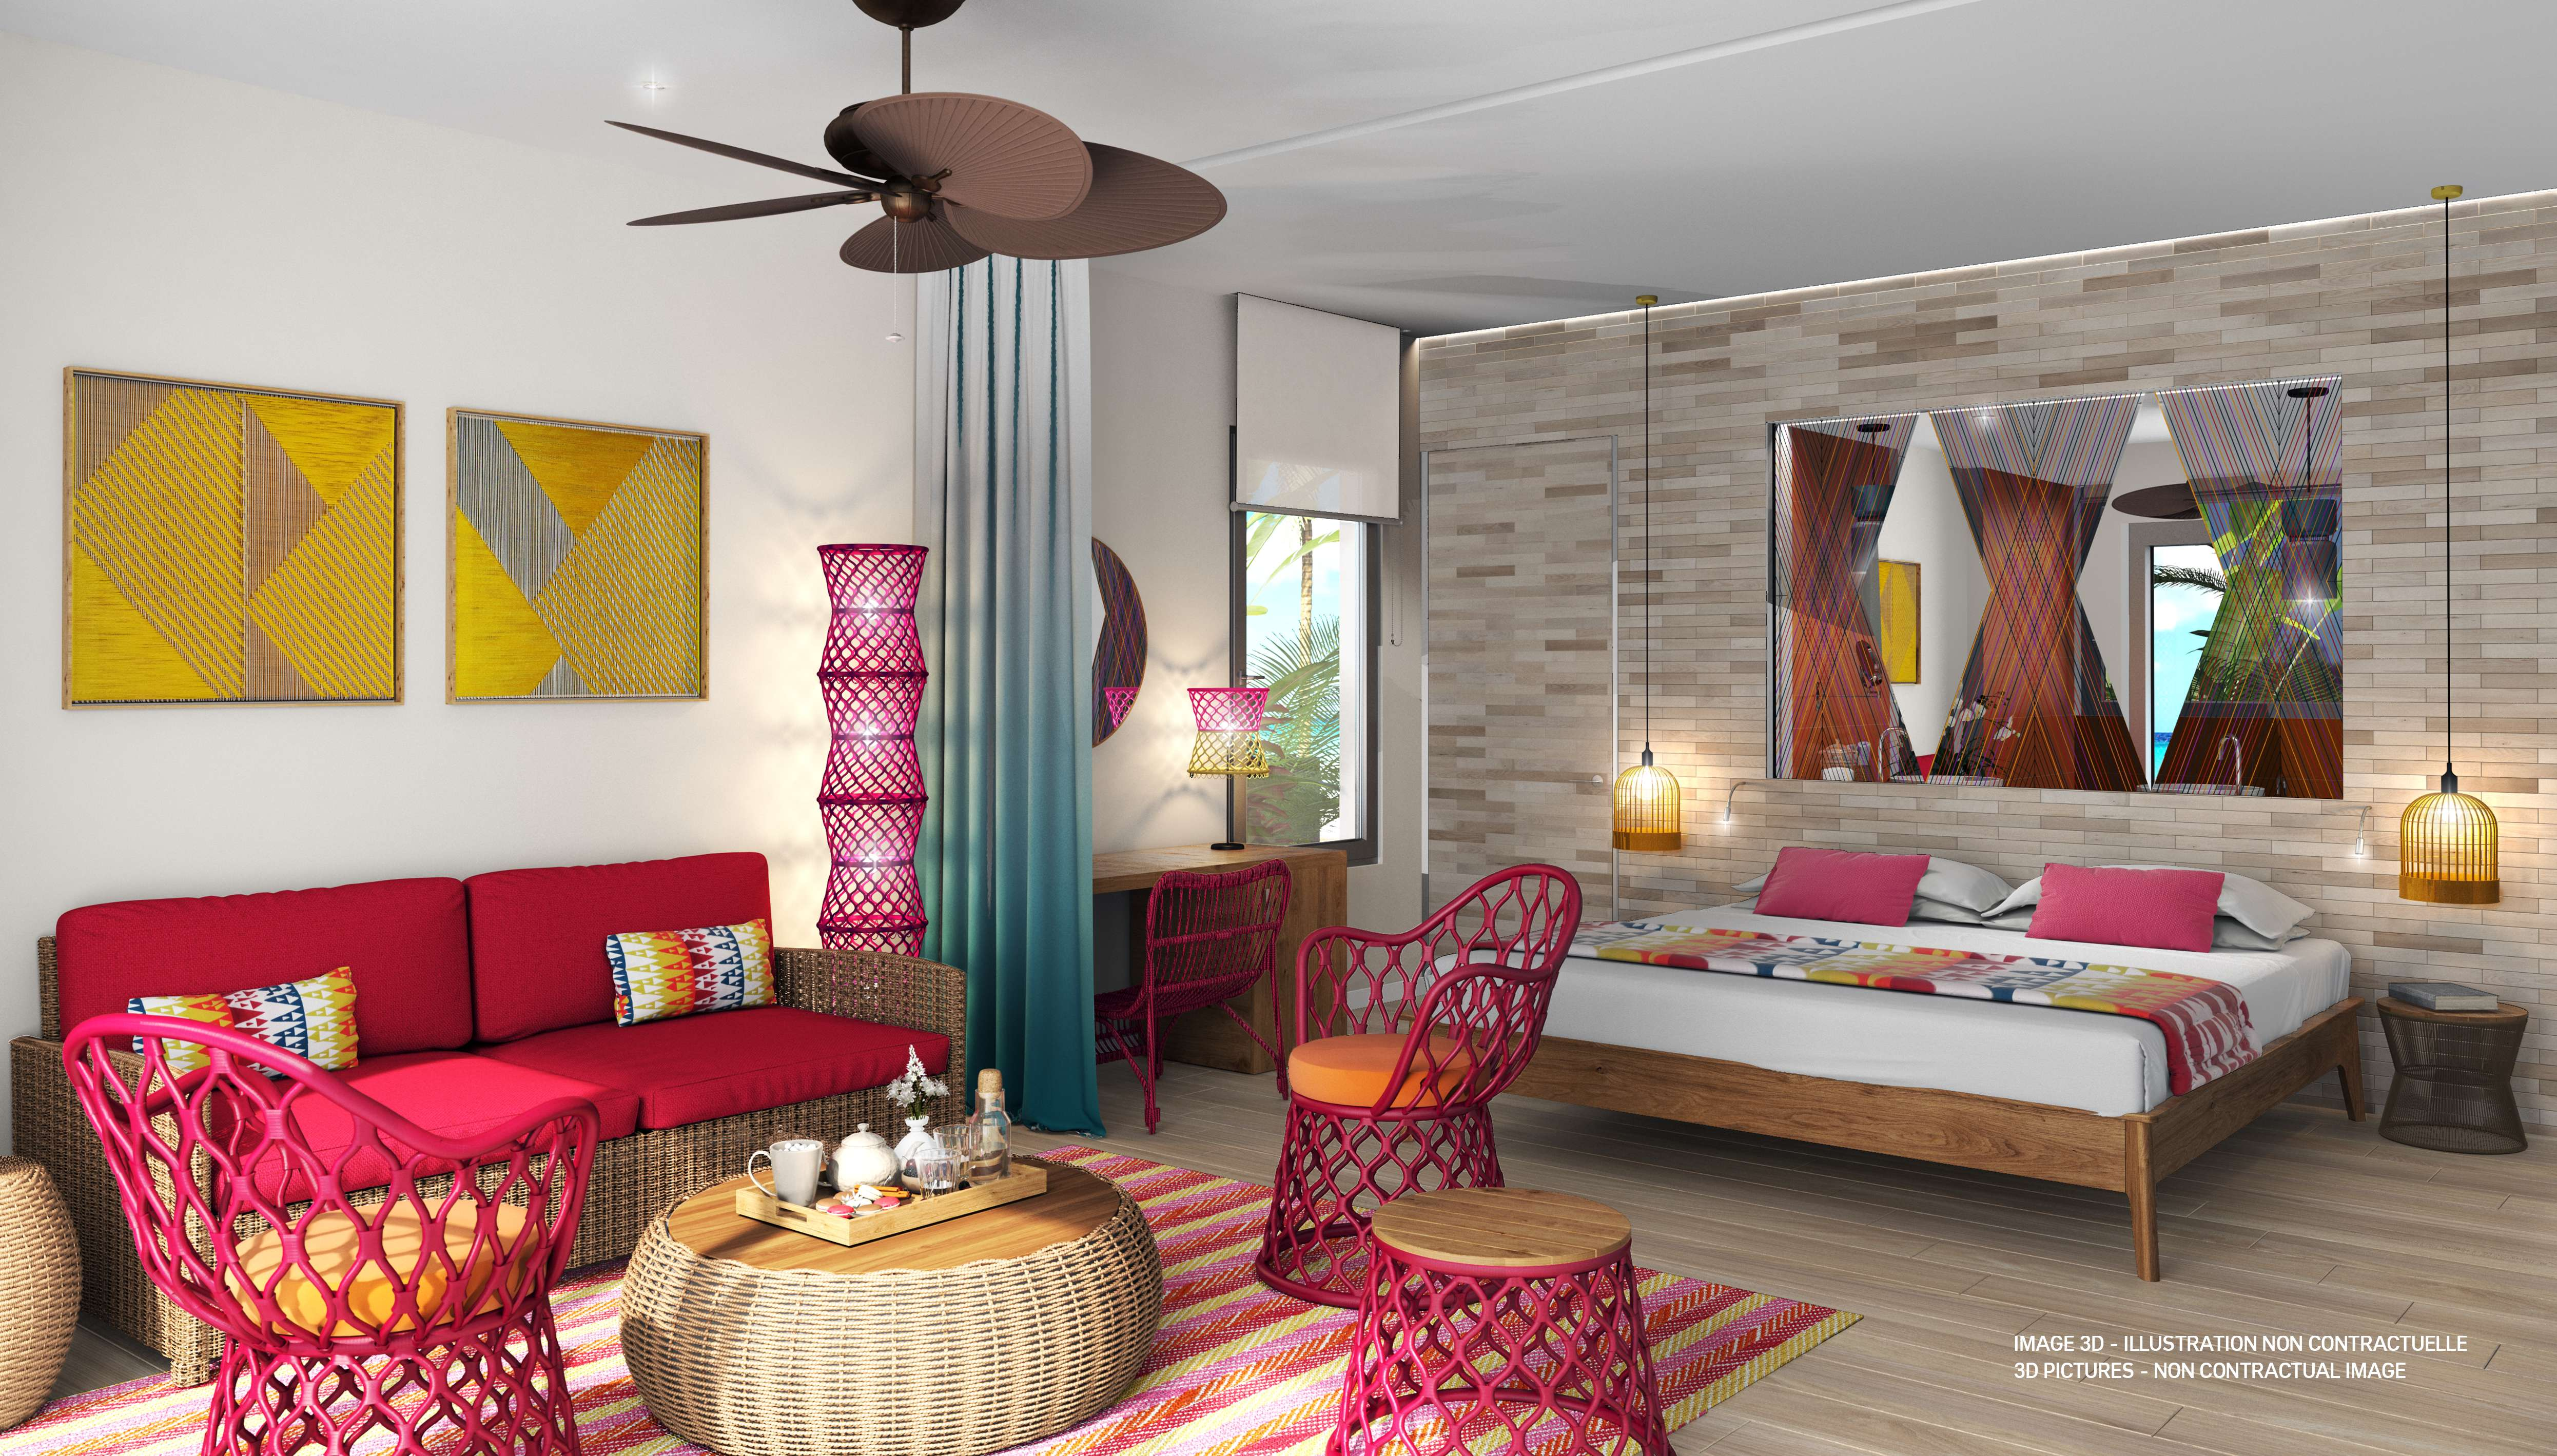 The Caribbean Paradise village has 111 rooms close to the main pool and the beach lounge.